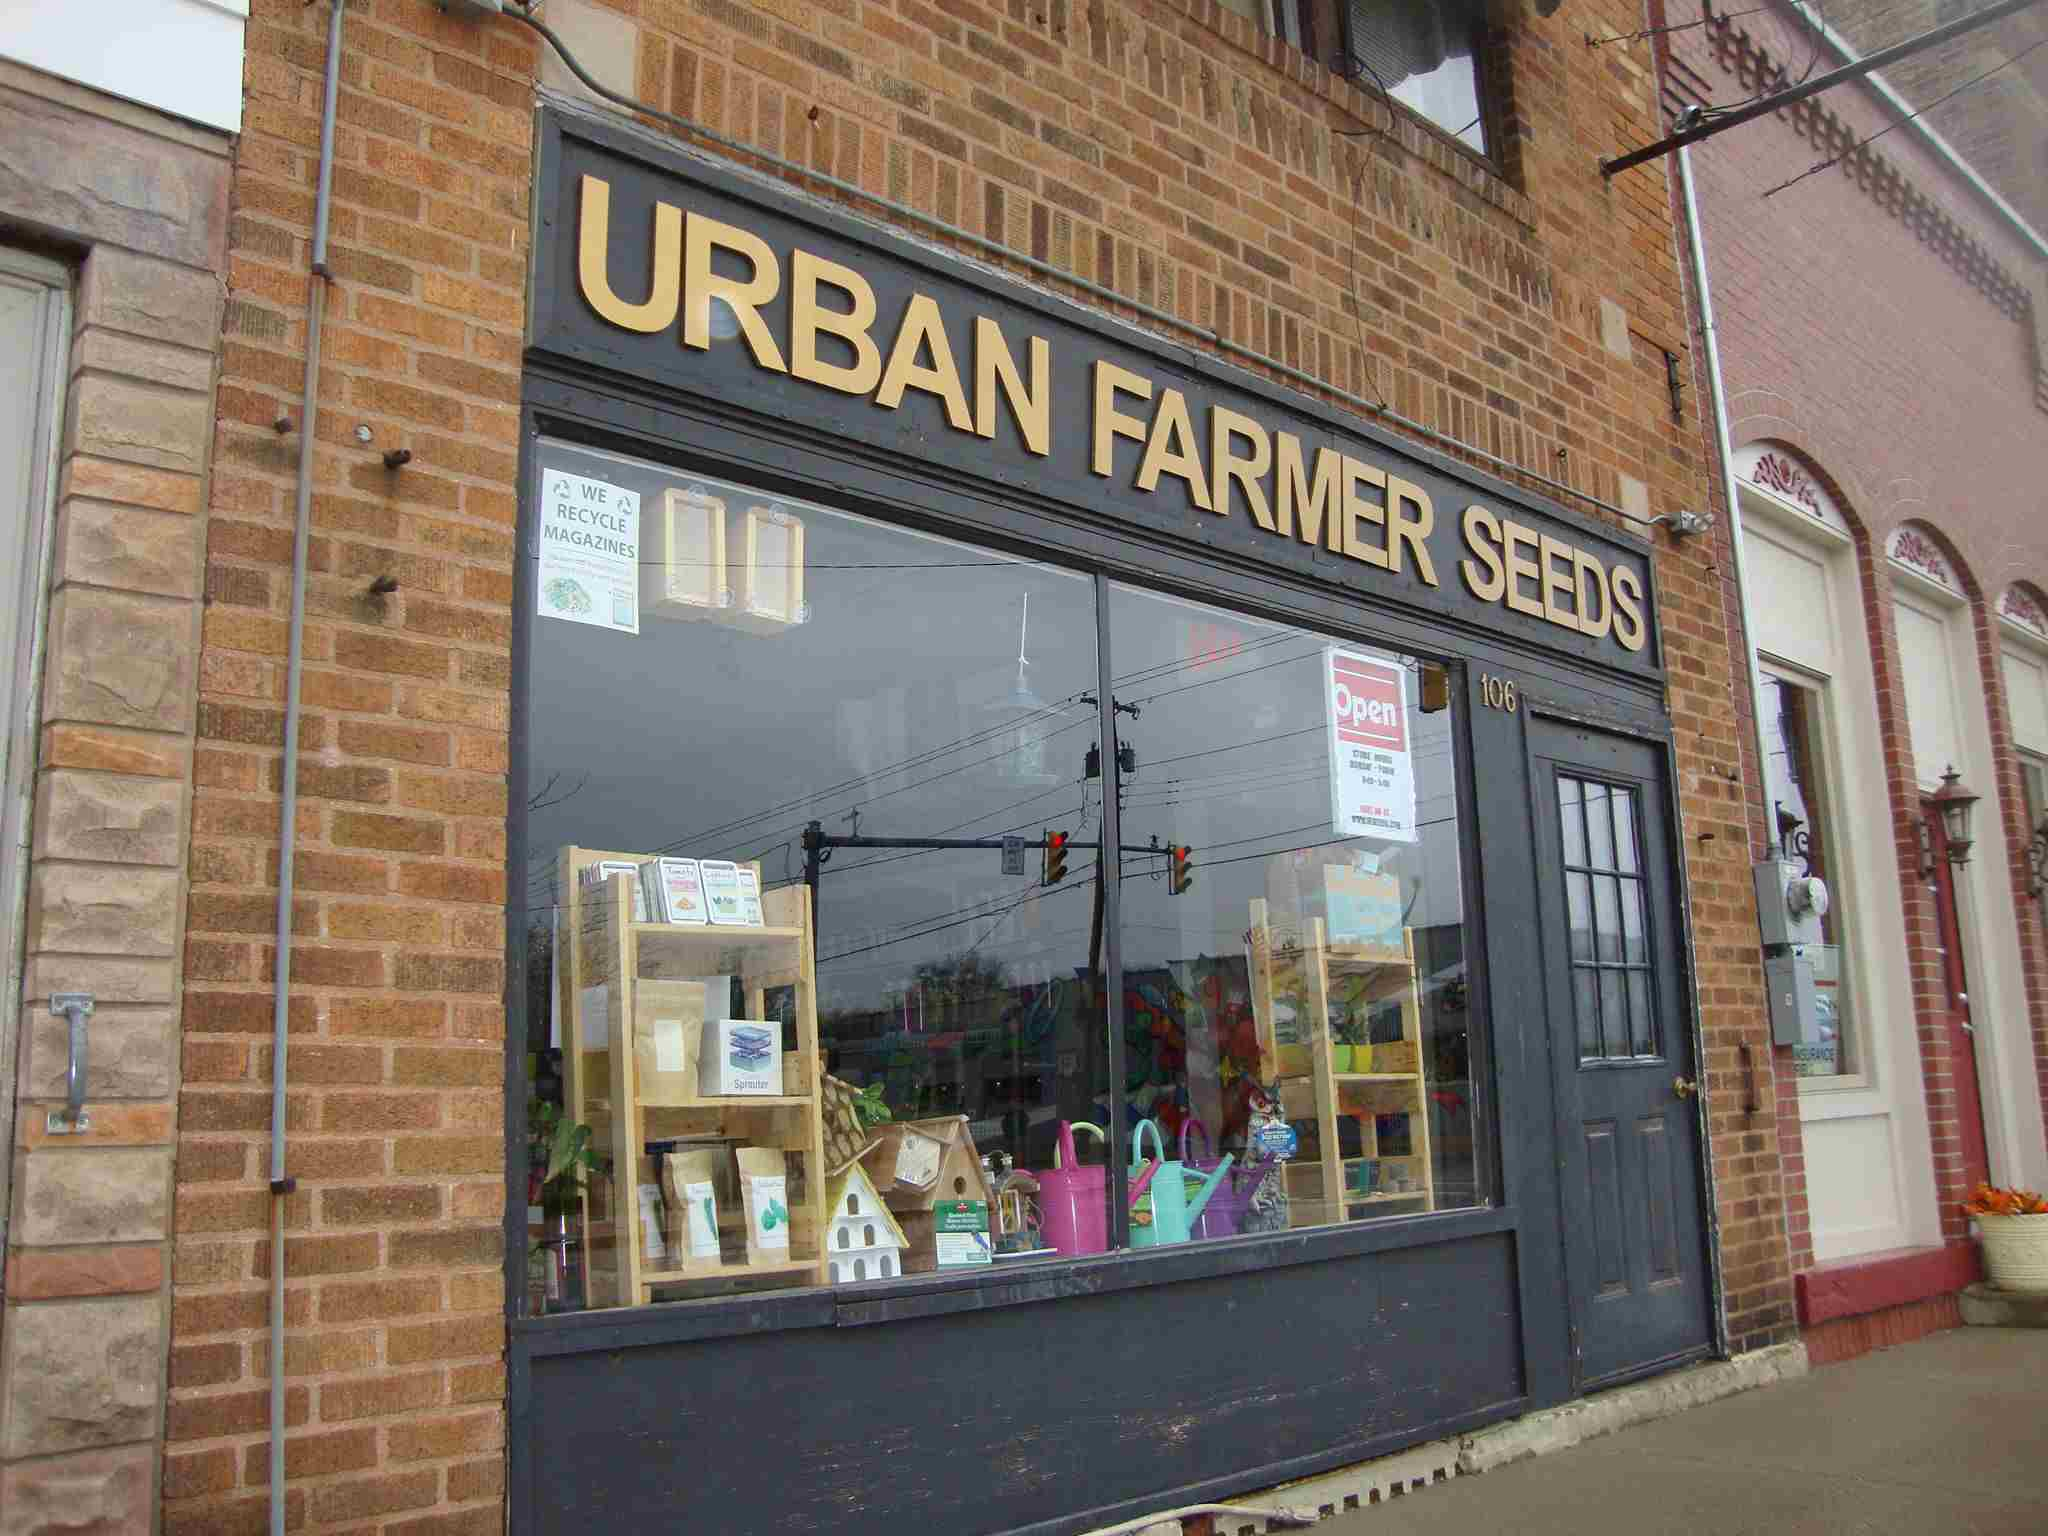 The Urban Farmer Seeds storefront